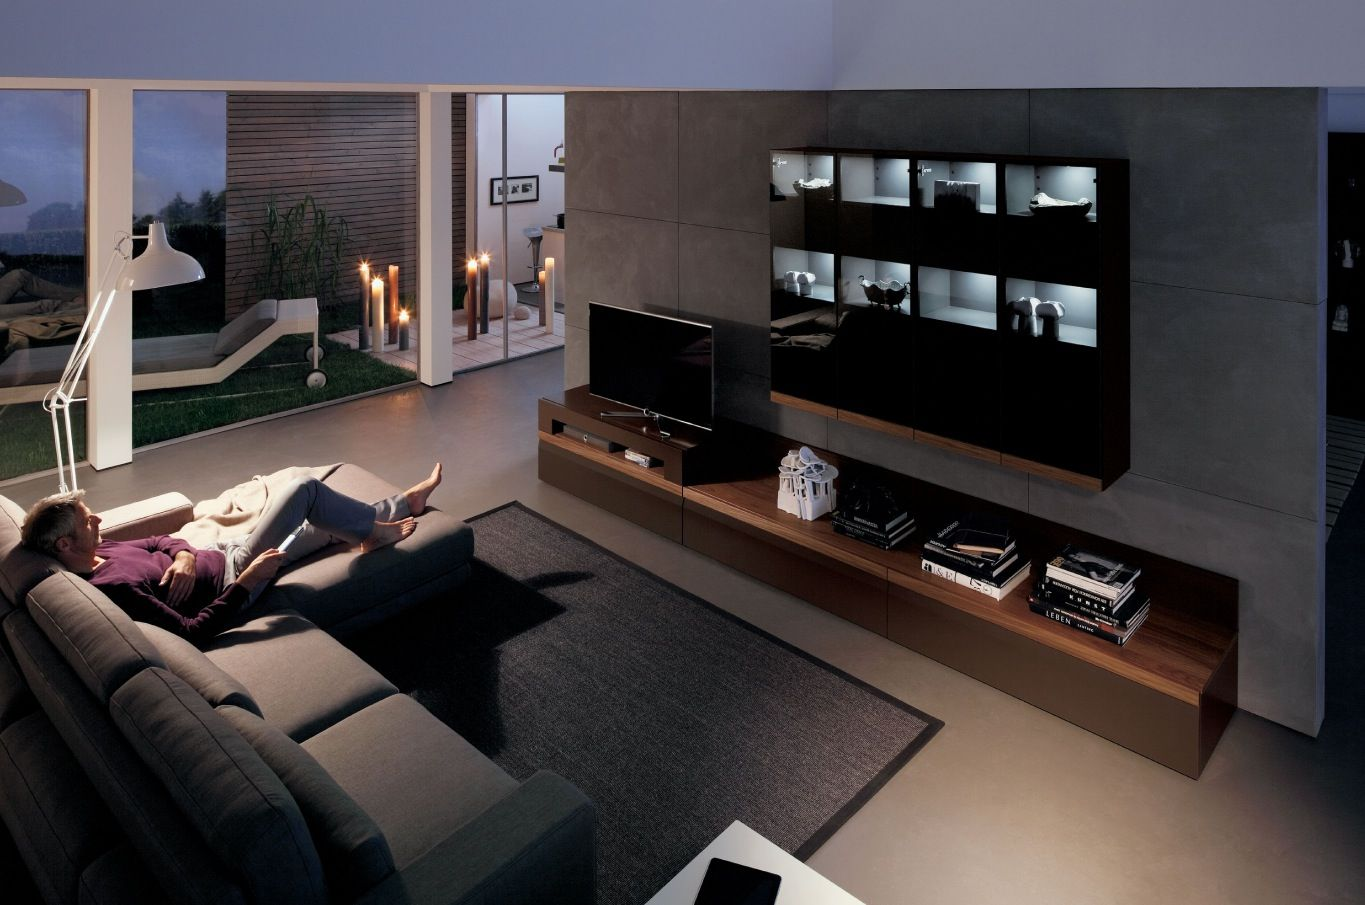 Charmant Dazzling Wood Finish Wall Units Collection From Hülsta : Impressive Wood Media  Center In Modern Living Room With Square Grey Rug And Cozy Grey Modular  Sofa ...